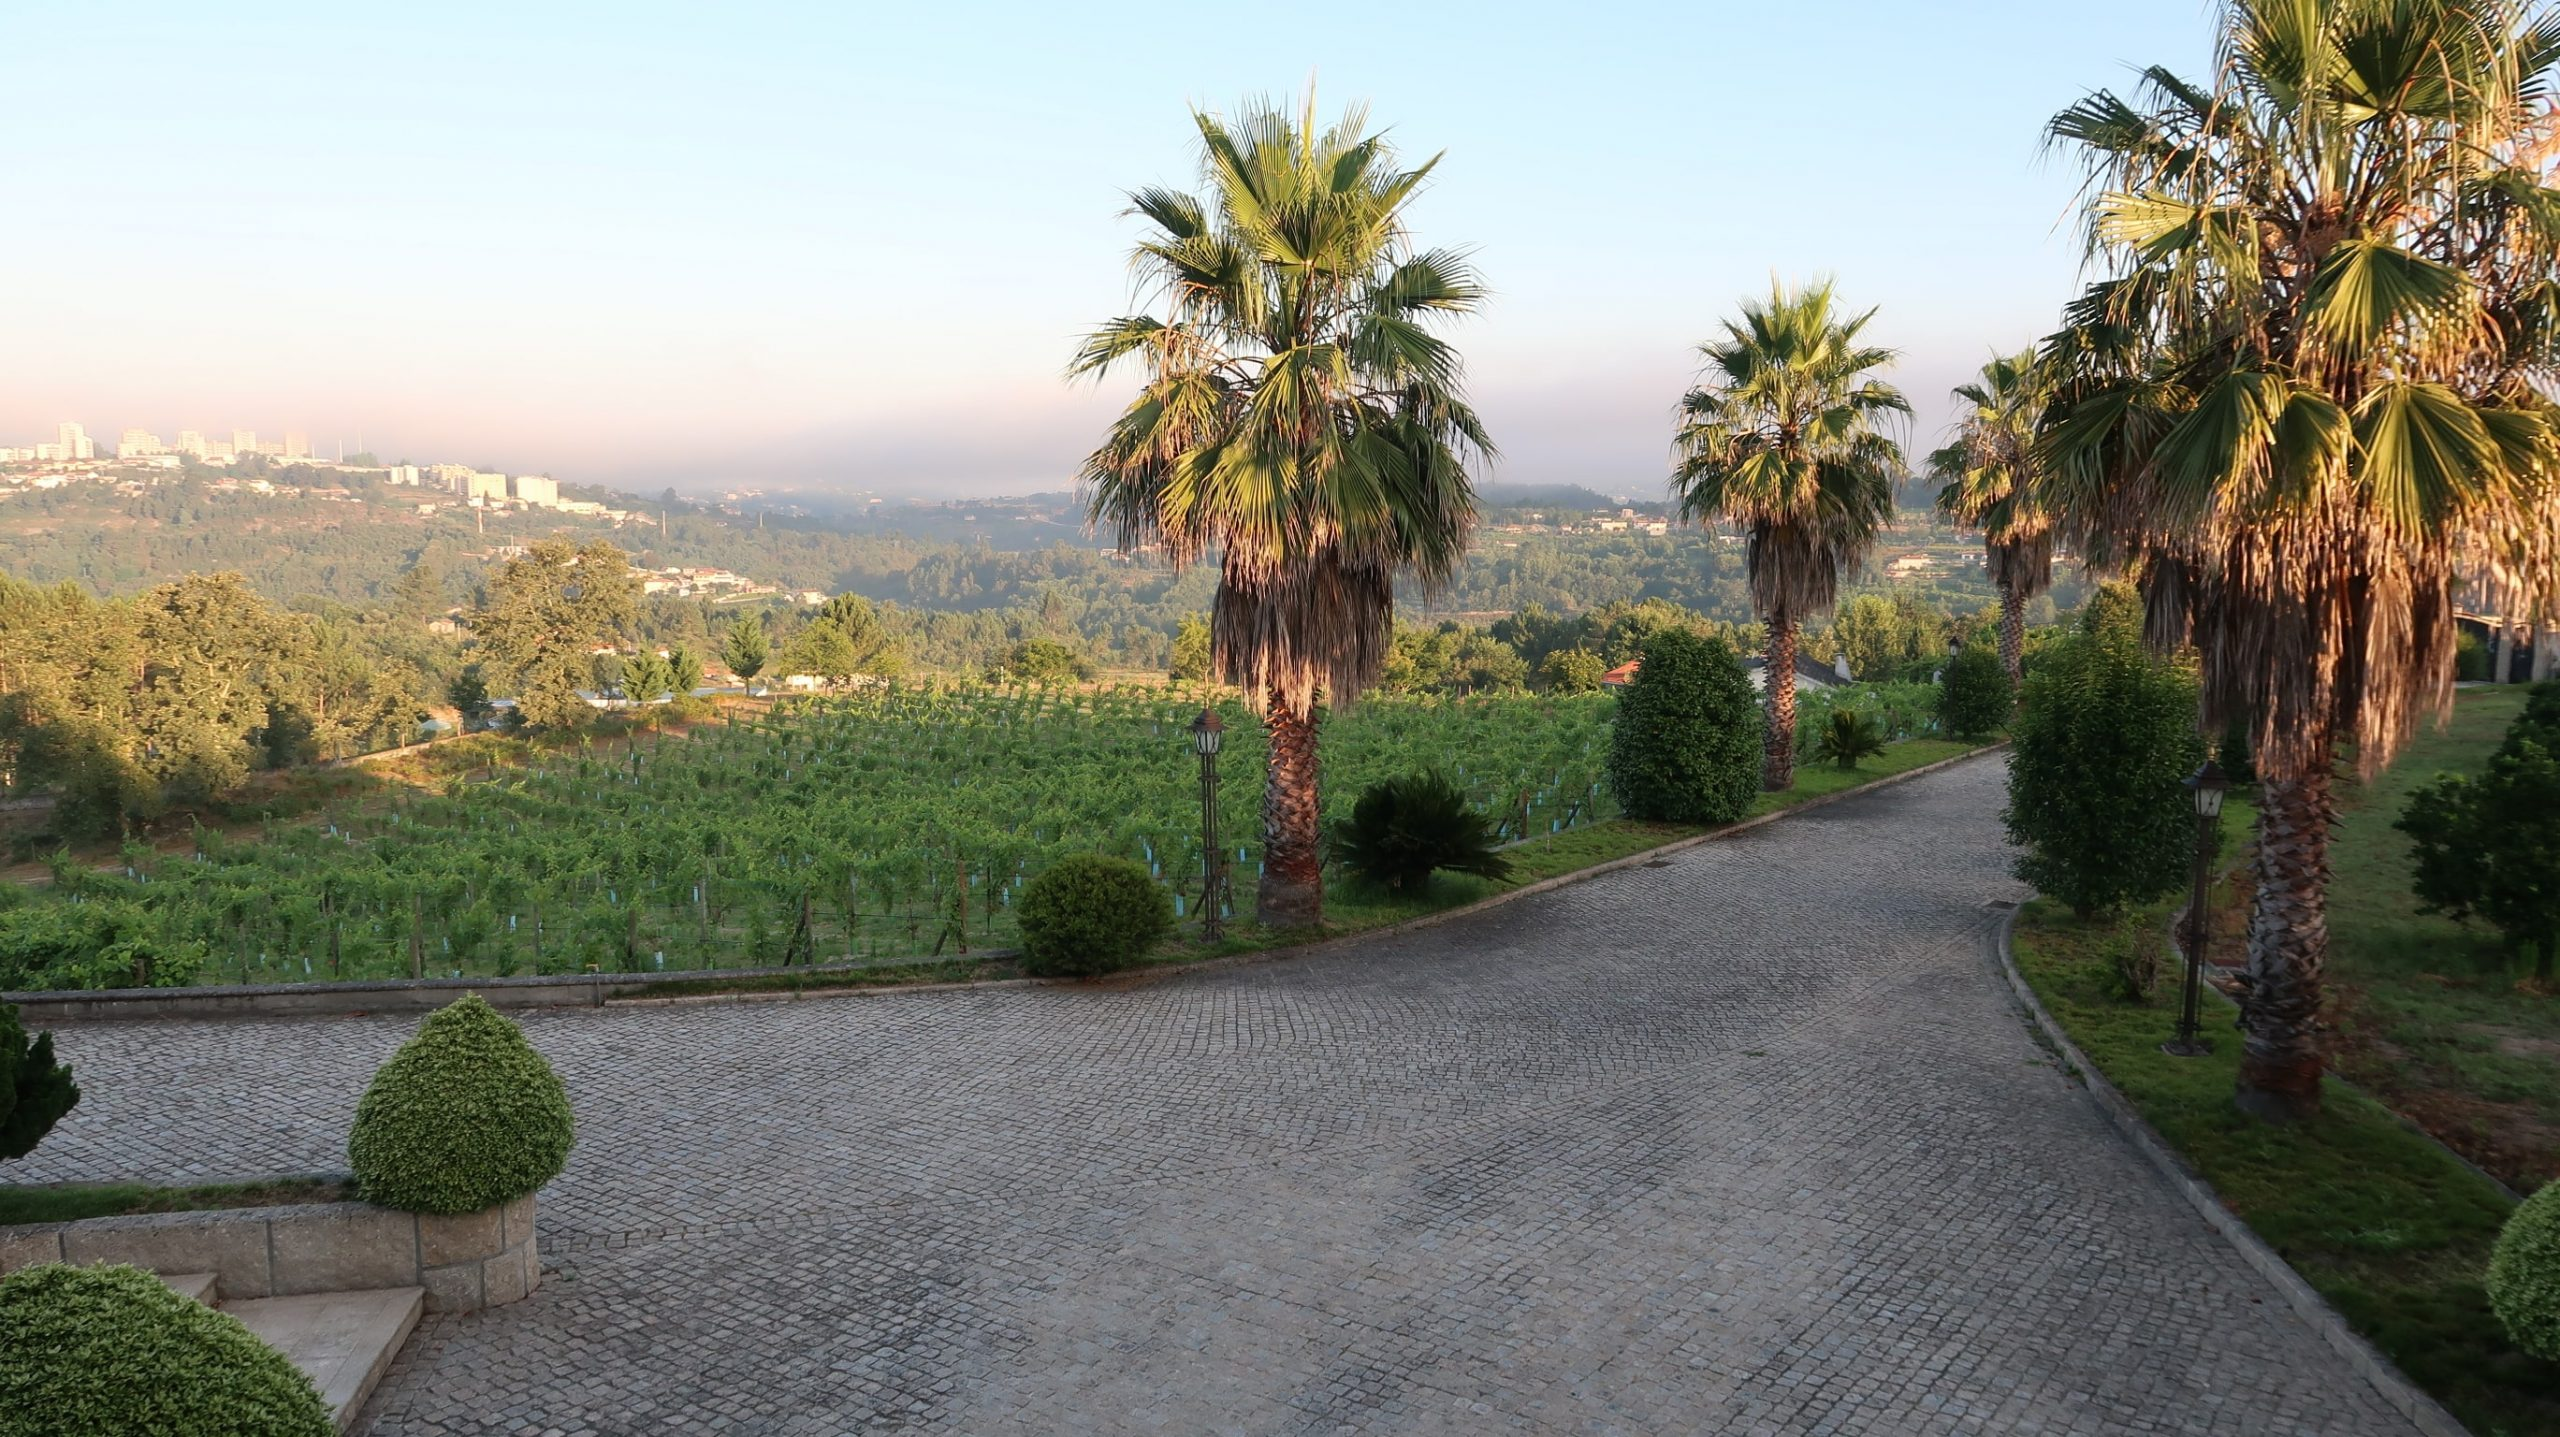 Balcony View - Minho Wine Region - Sapateiro Wines